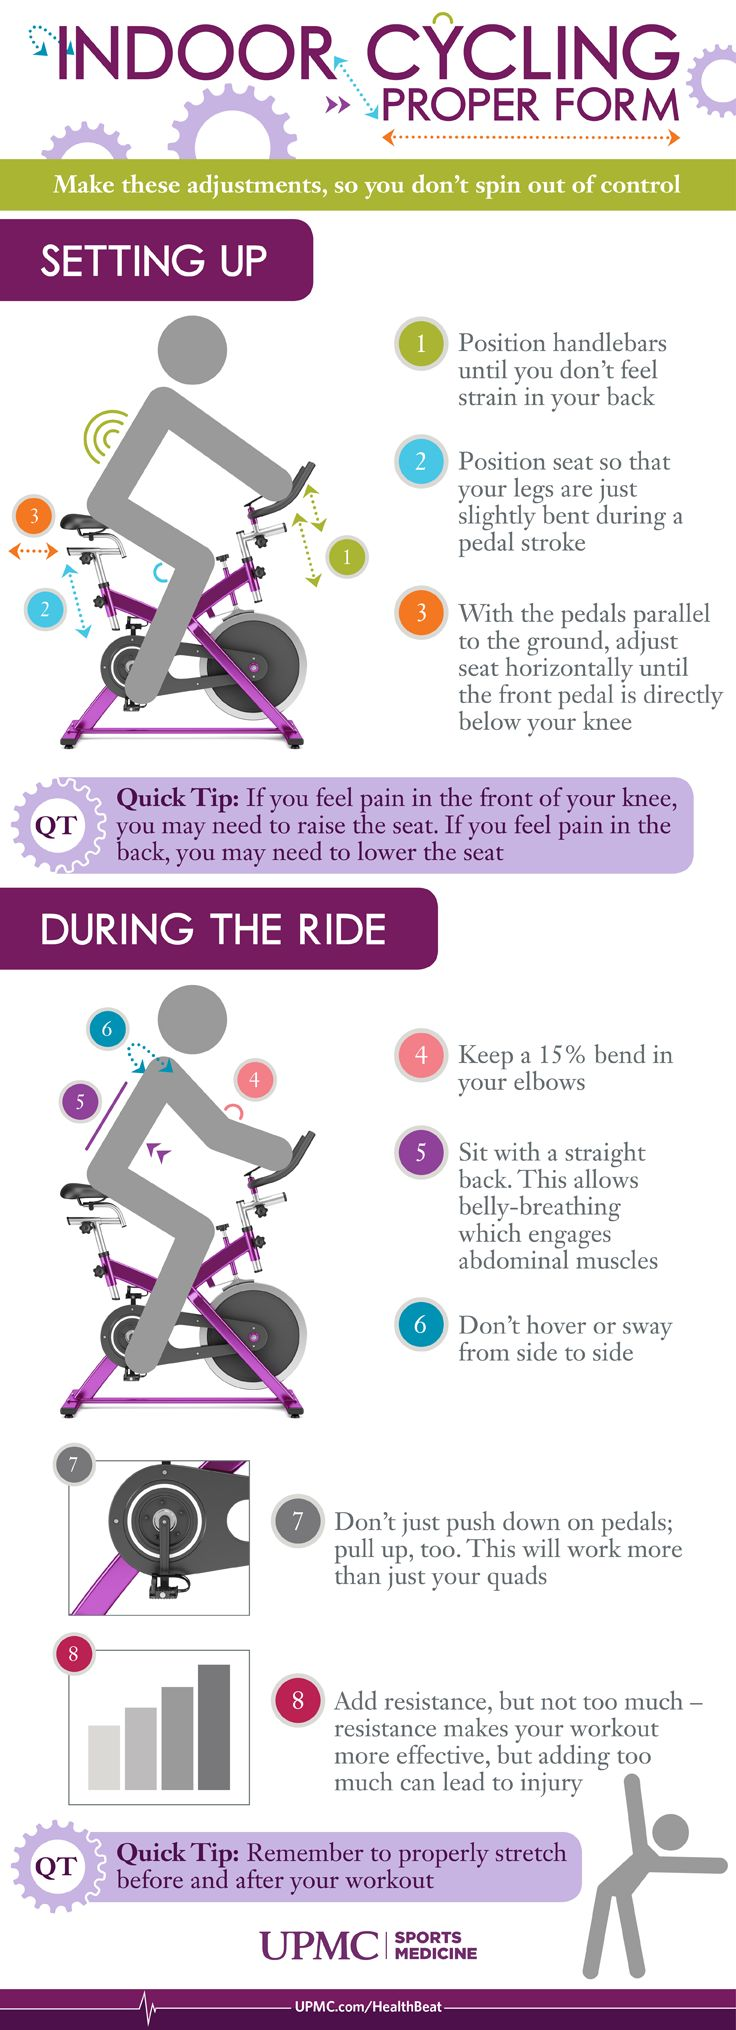 Learn how to set up your indoor cycling bike and maintain proper form during class.